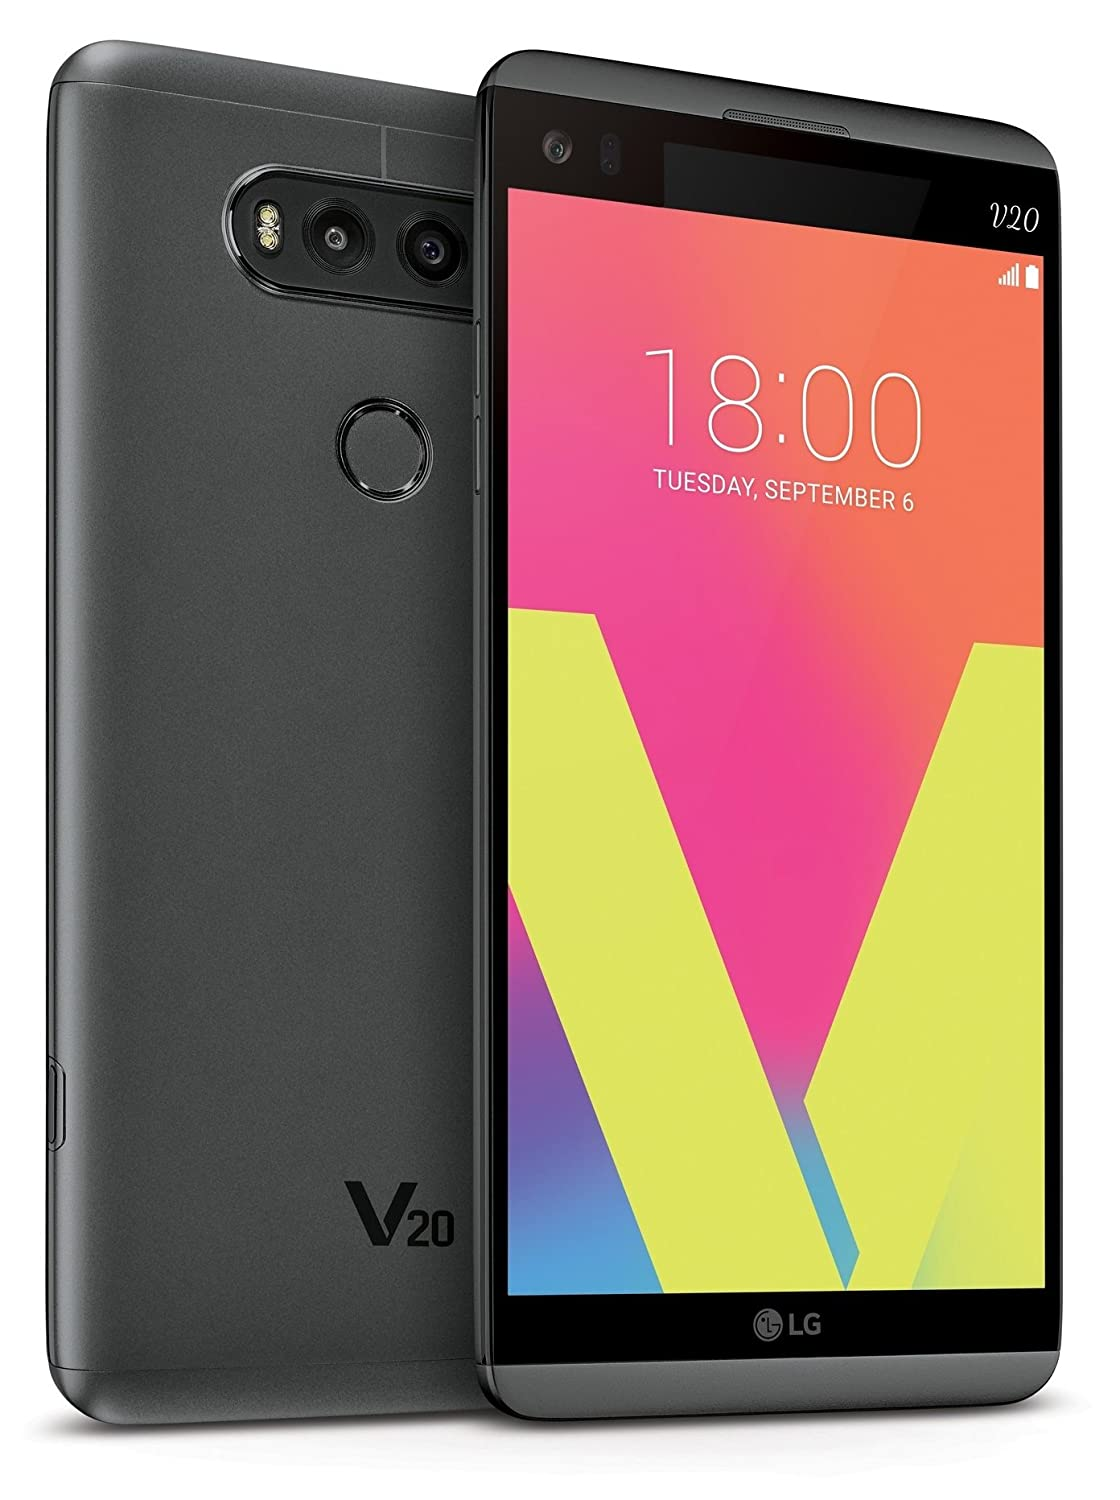 LG V20 64GB 5.7-inch AT&T Smartphone with Superior Video, Photography, Next-Level Audio - Unlocked for All GSM Carriers Worldwide (Titan Gray)